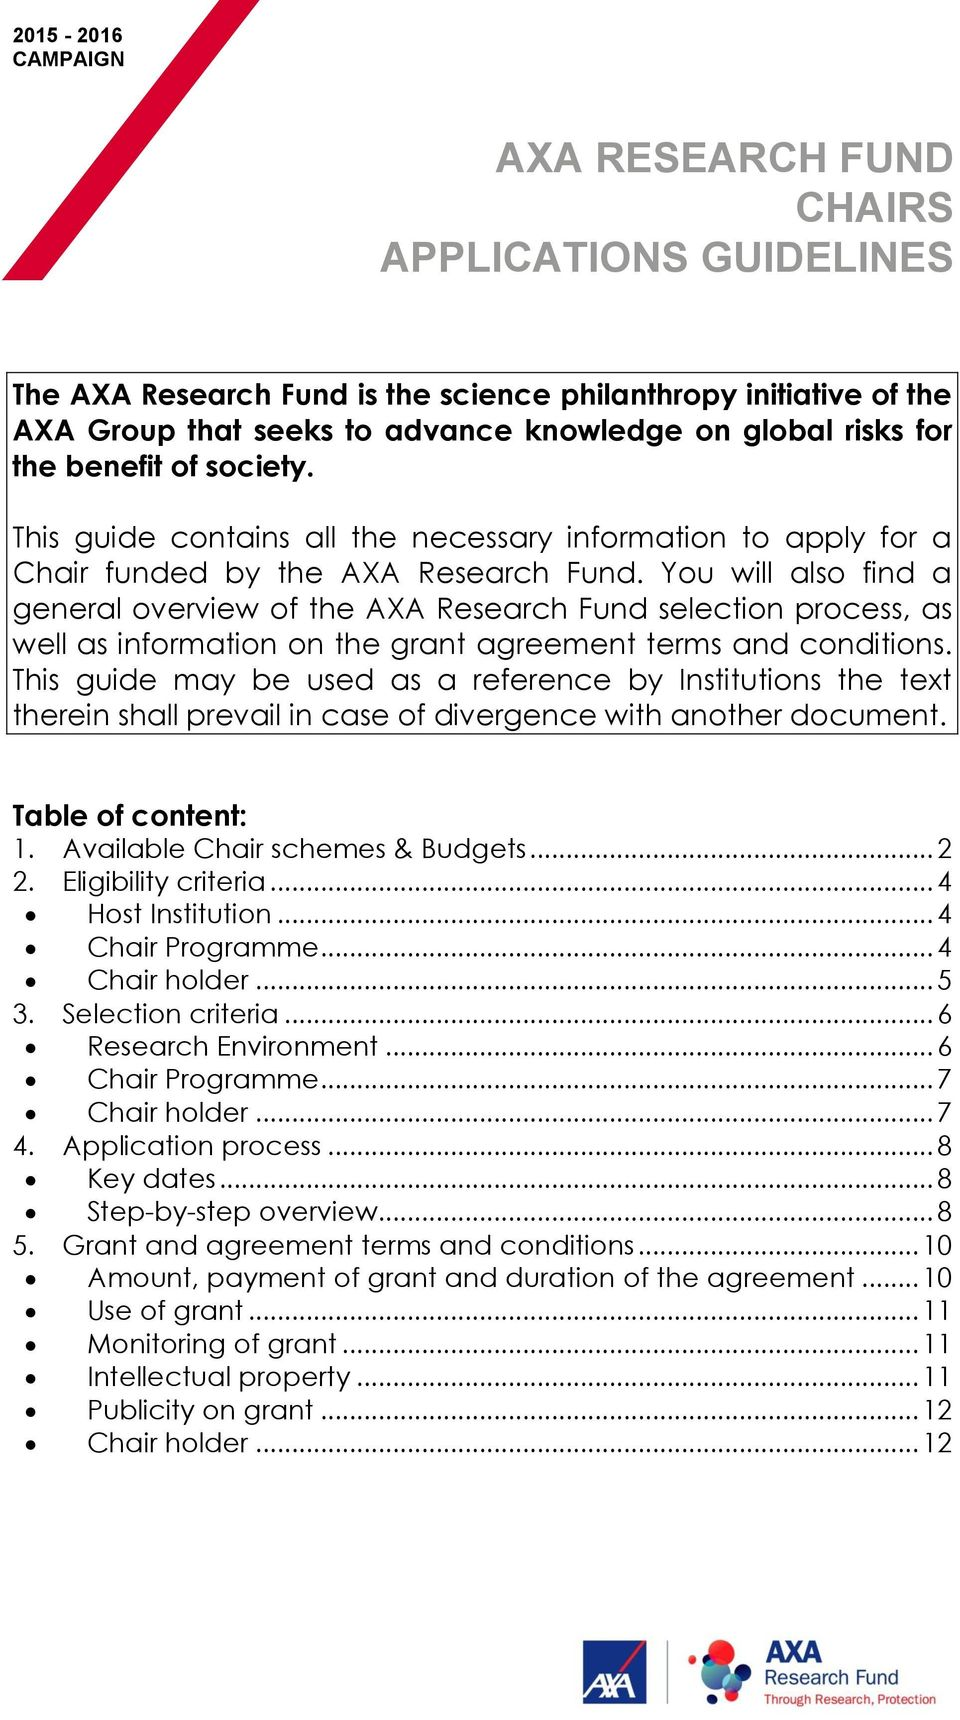 You will also find a general overview of the AXA Research Fund selection process, as well as information on the grant agreement terms and conditions.